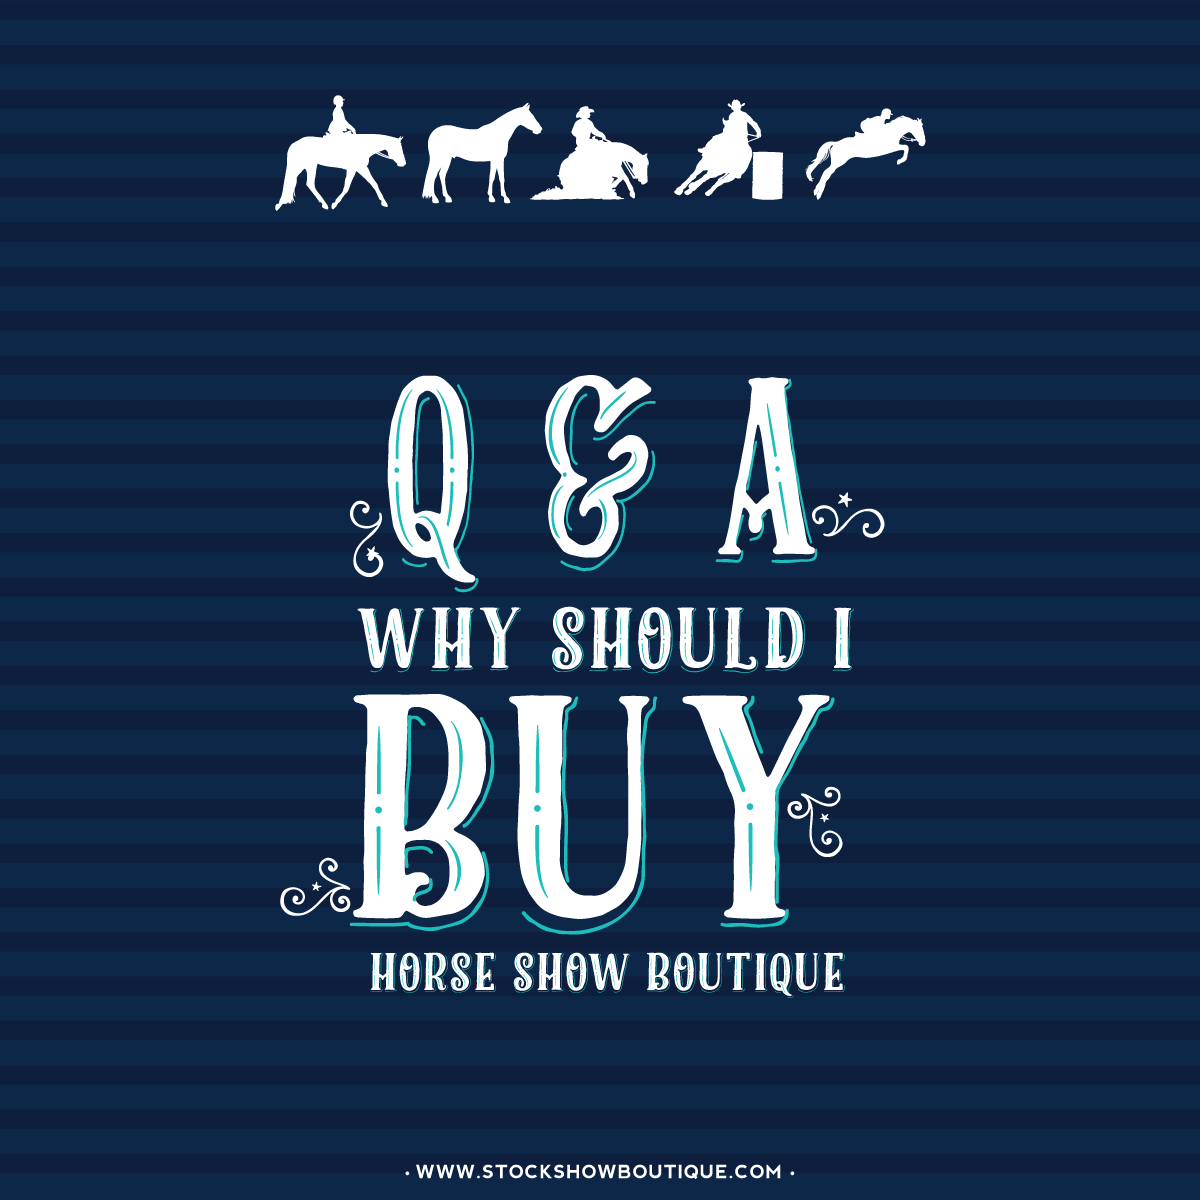 The Sale of Horse Show Boutique